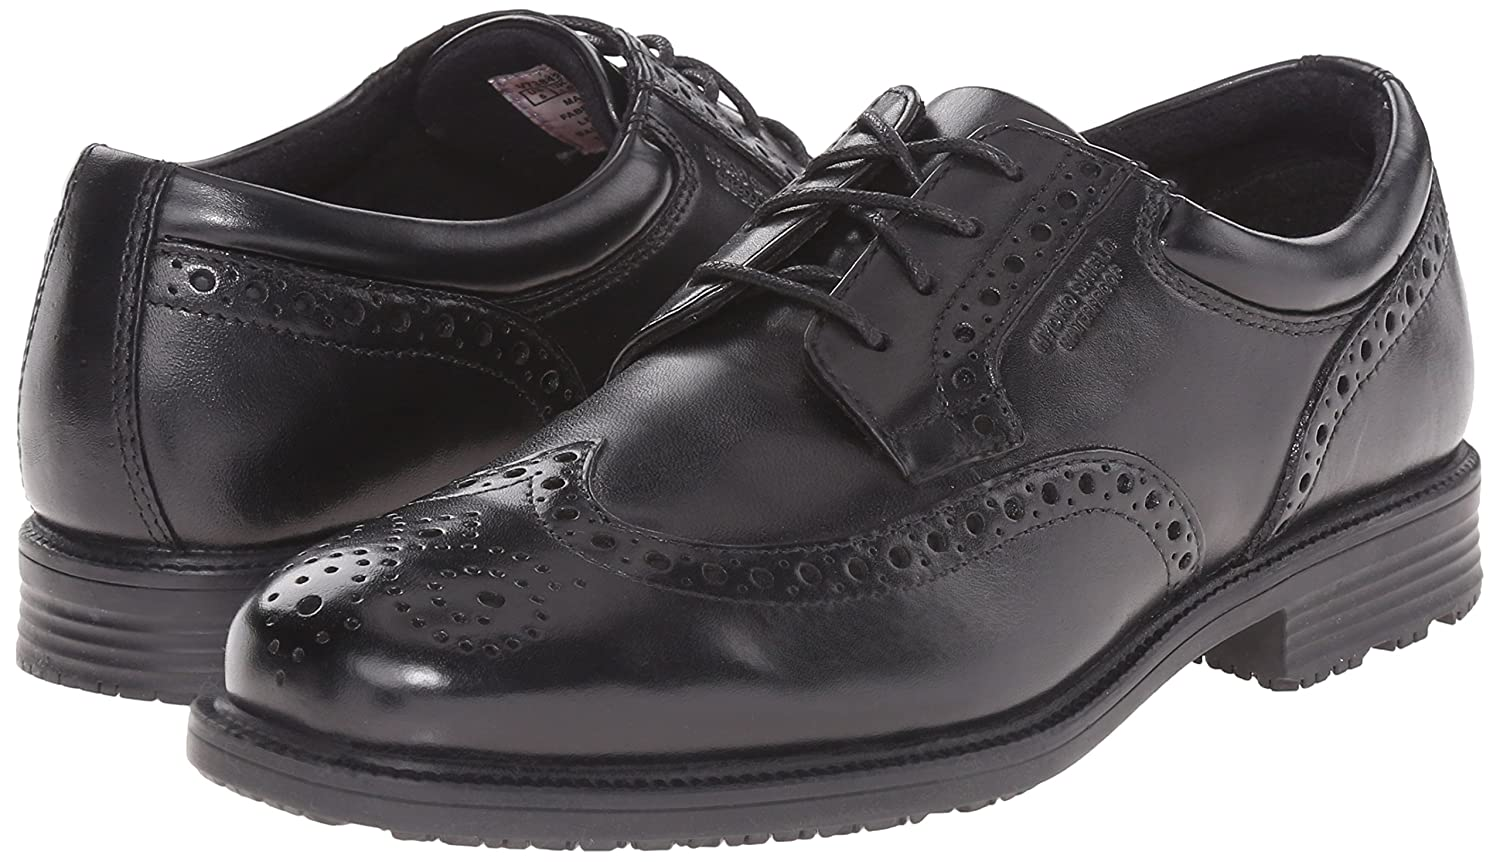 Rockport Men's Essential Details Waterproof Wingtip Oxford Shoe B00AIGRGF8 B00AIGRGF8 Shoe Fashion Sneakers 2646e2